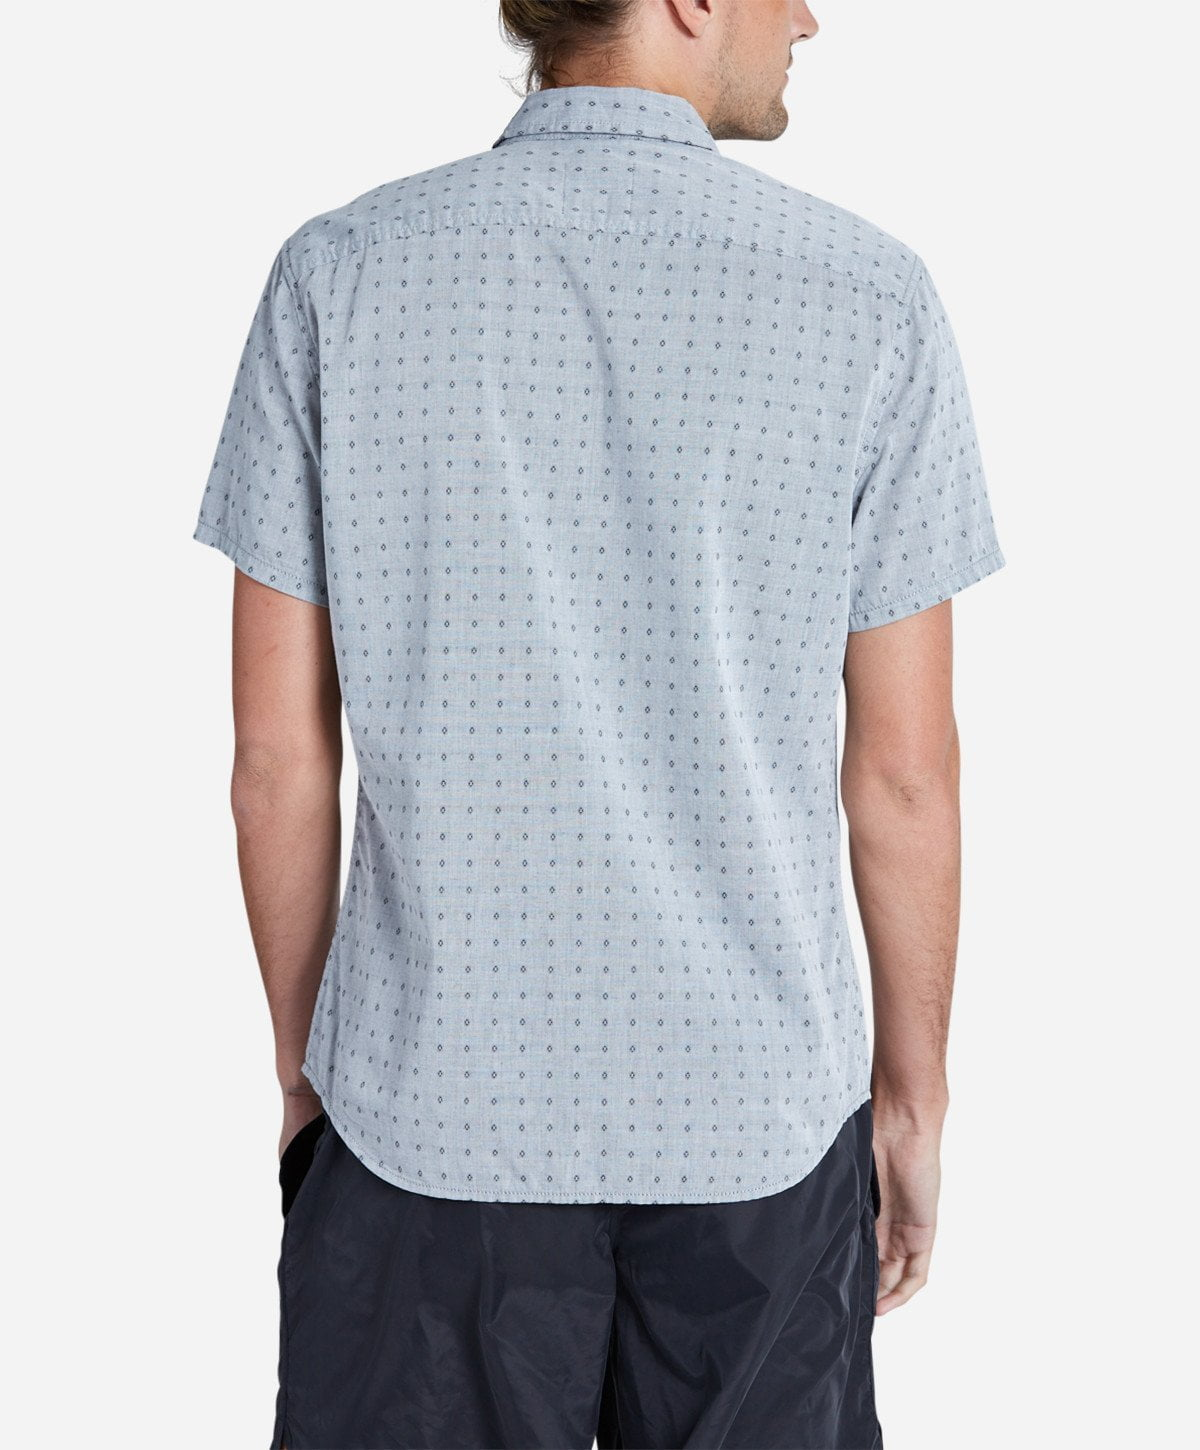 Outfield Short Sleeve Shirt - Heather Grey